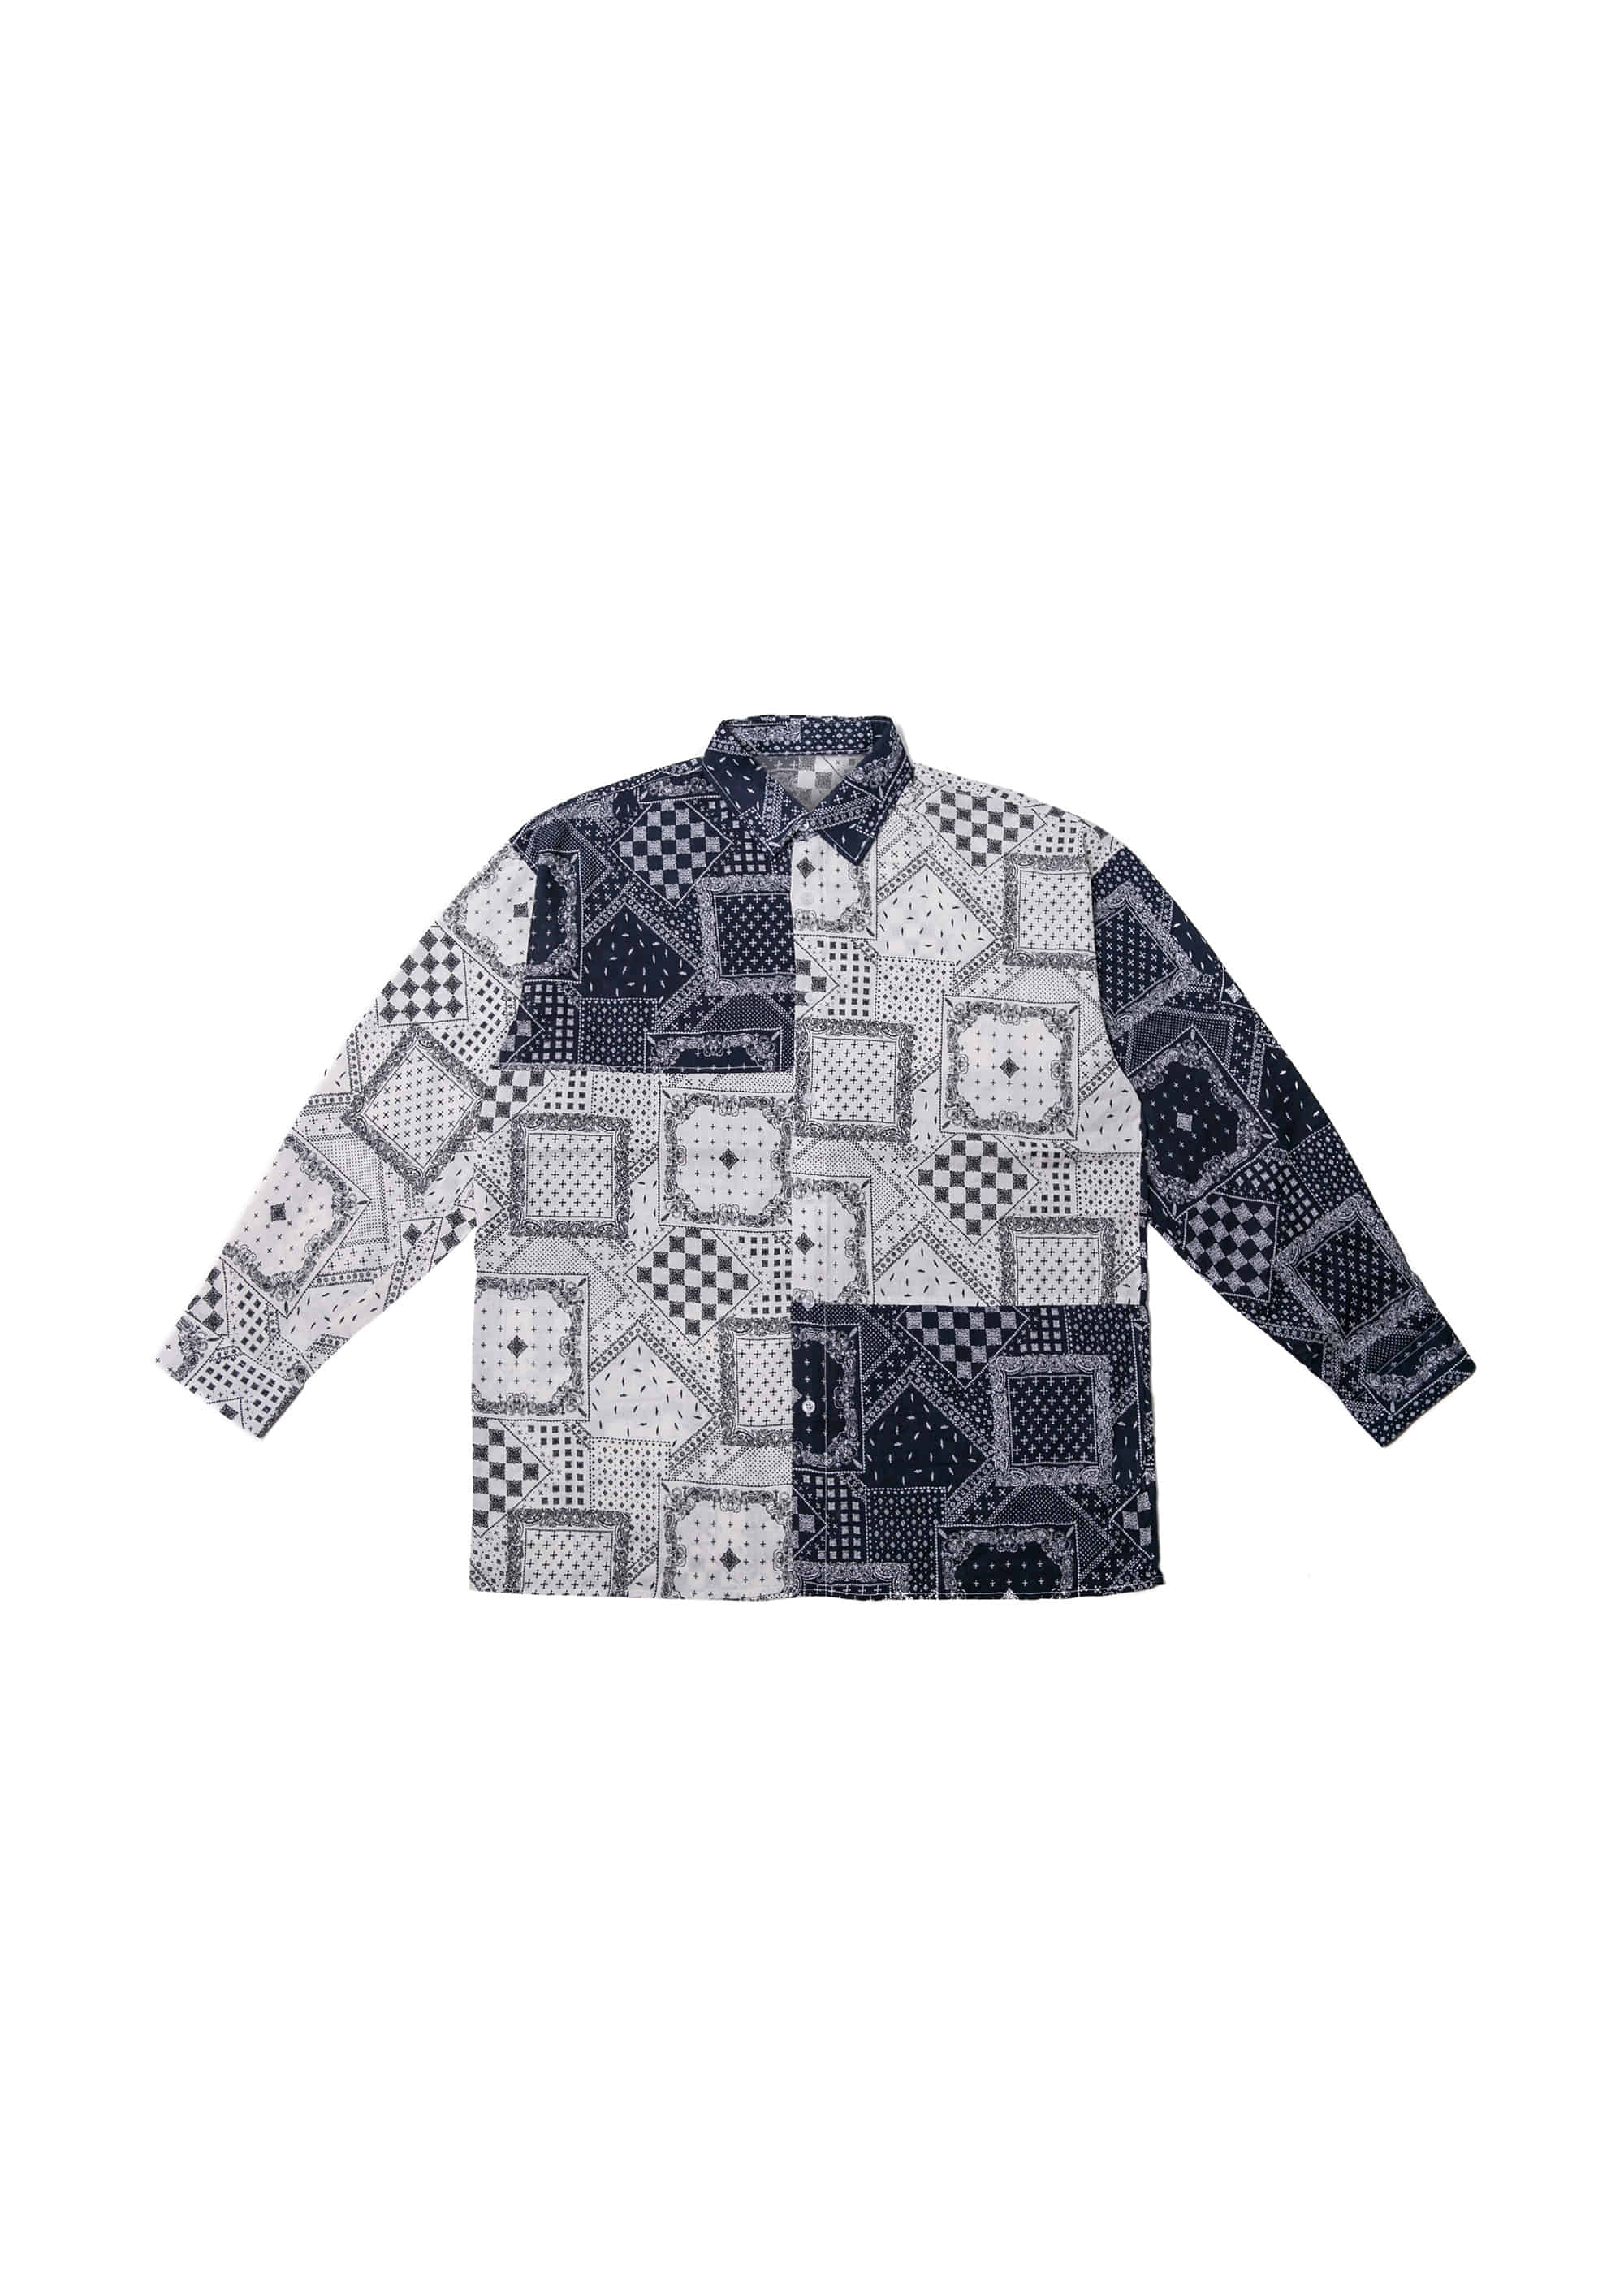 Paisley Patch Work Color Block Shirts - Navy